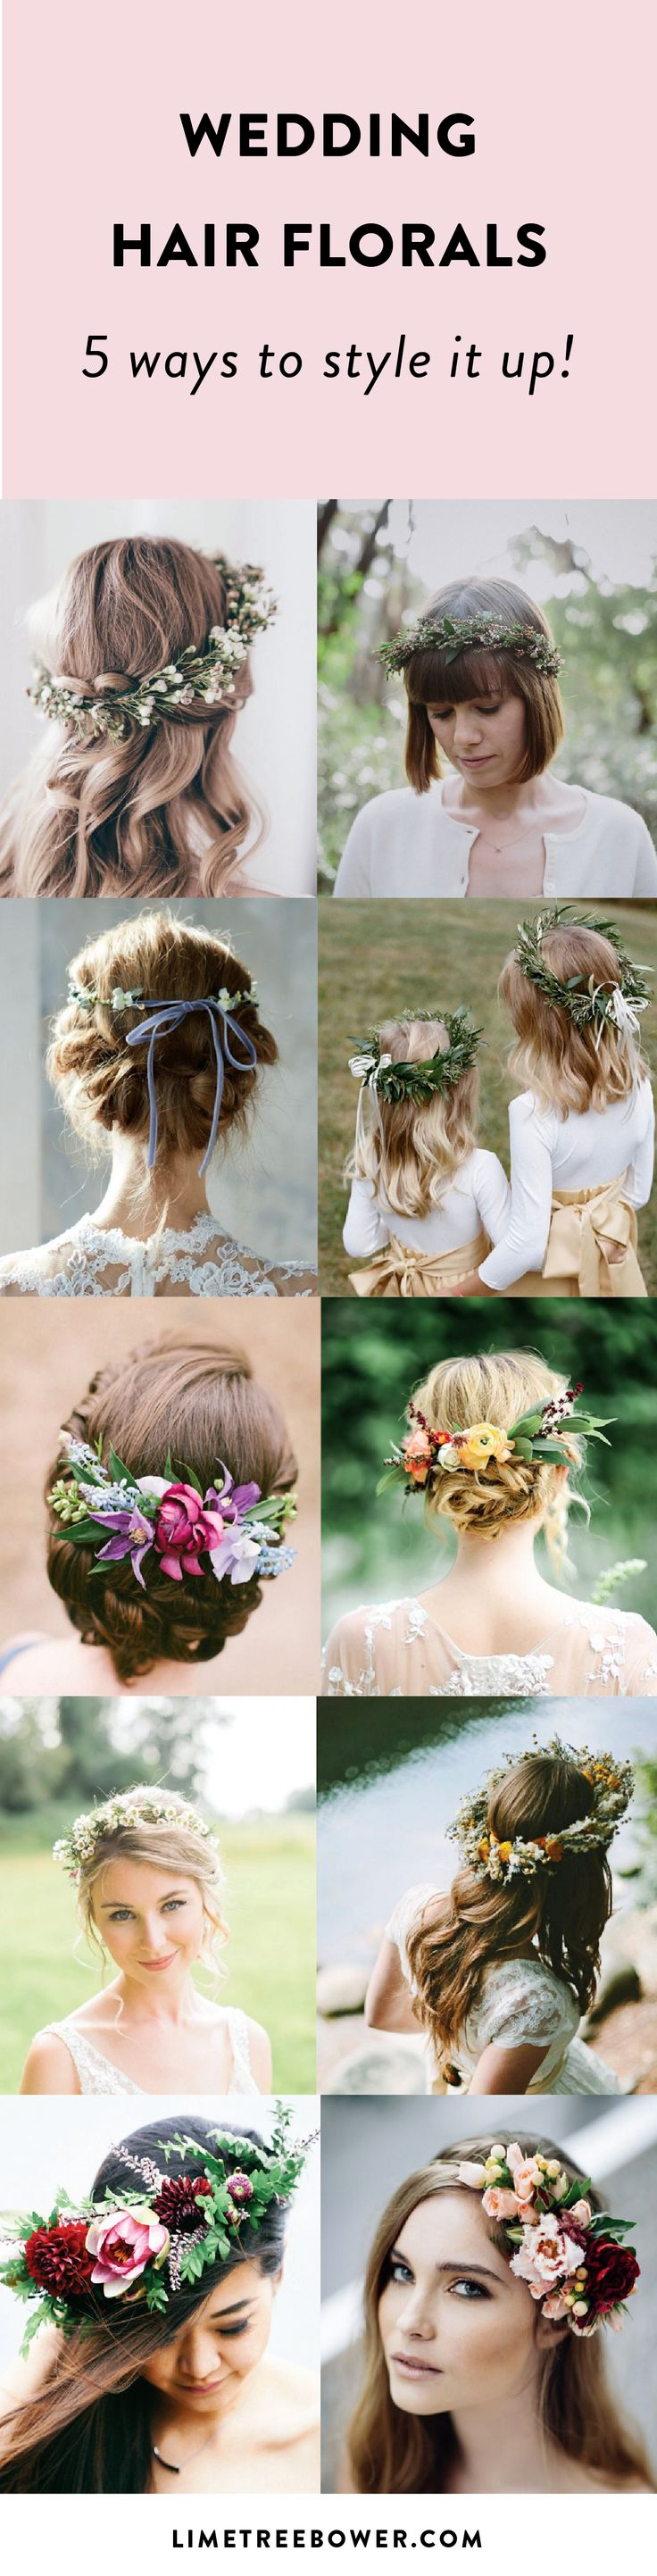 Ways to style wedding hair with flowers. See how to style your hair up for your wedding. Beautiful bridal wedding hairstyles.   Lime Tree Bower